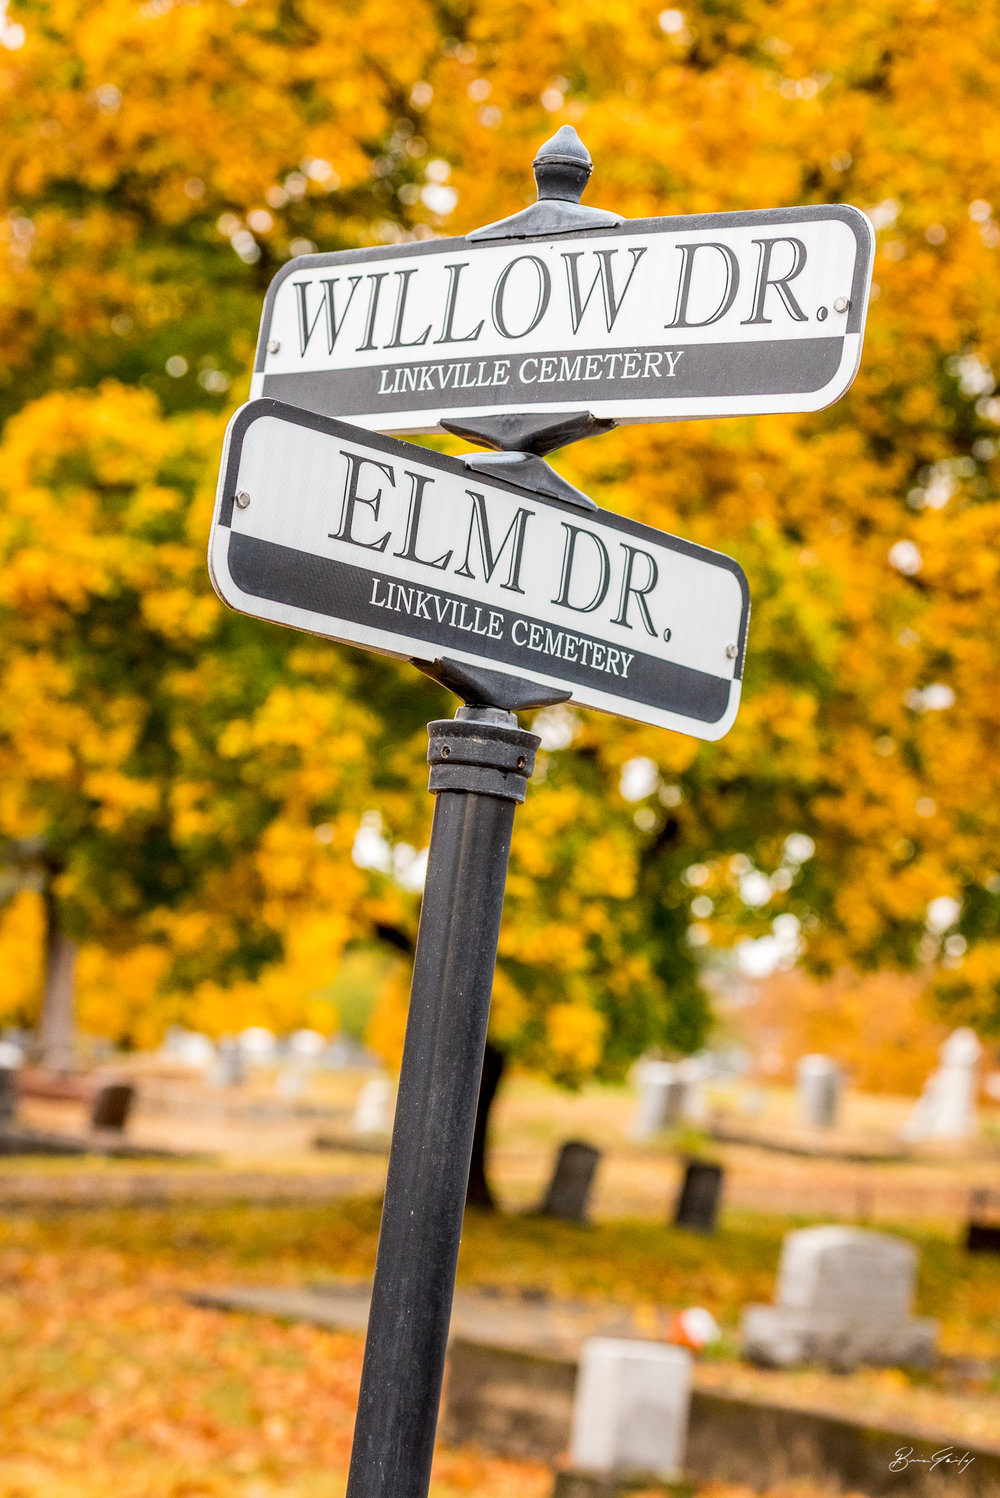 Street signs from the Linkville Cemetery in Klamath Falls, Ore. Image: Brian Gailey